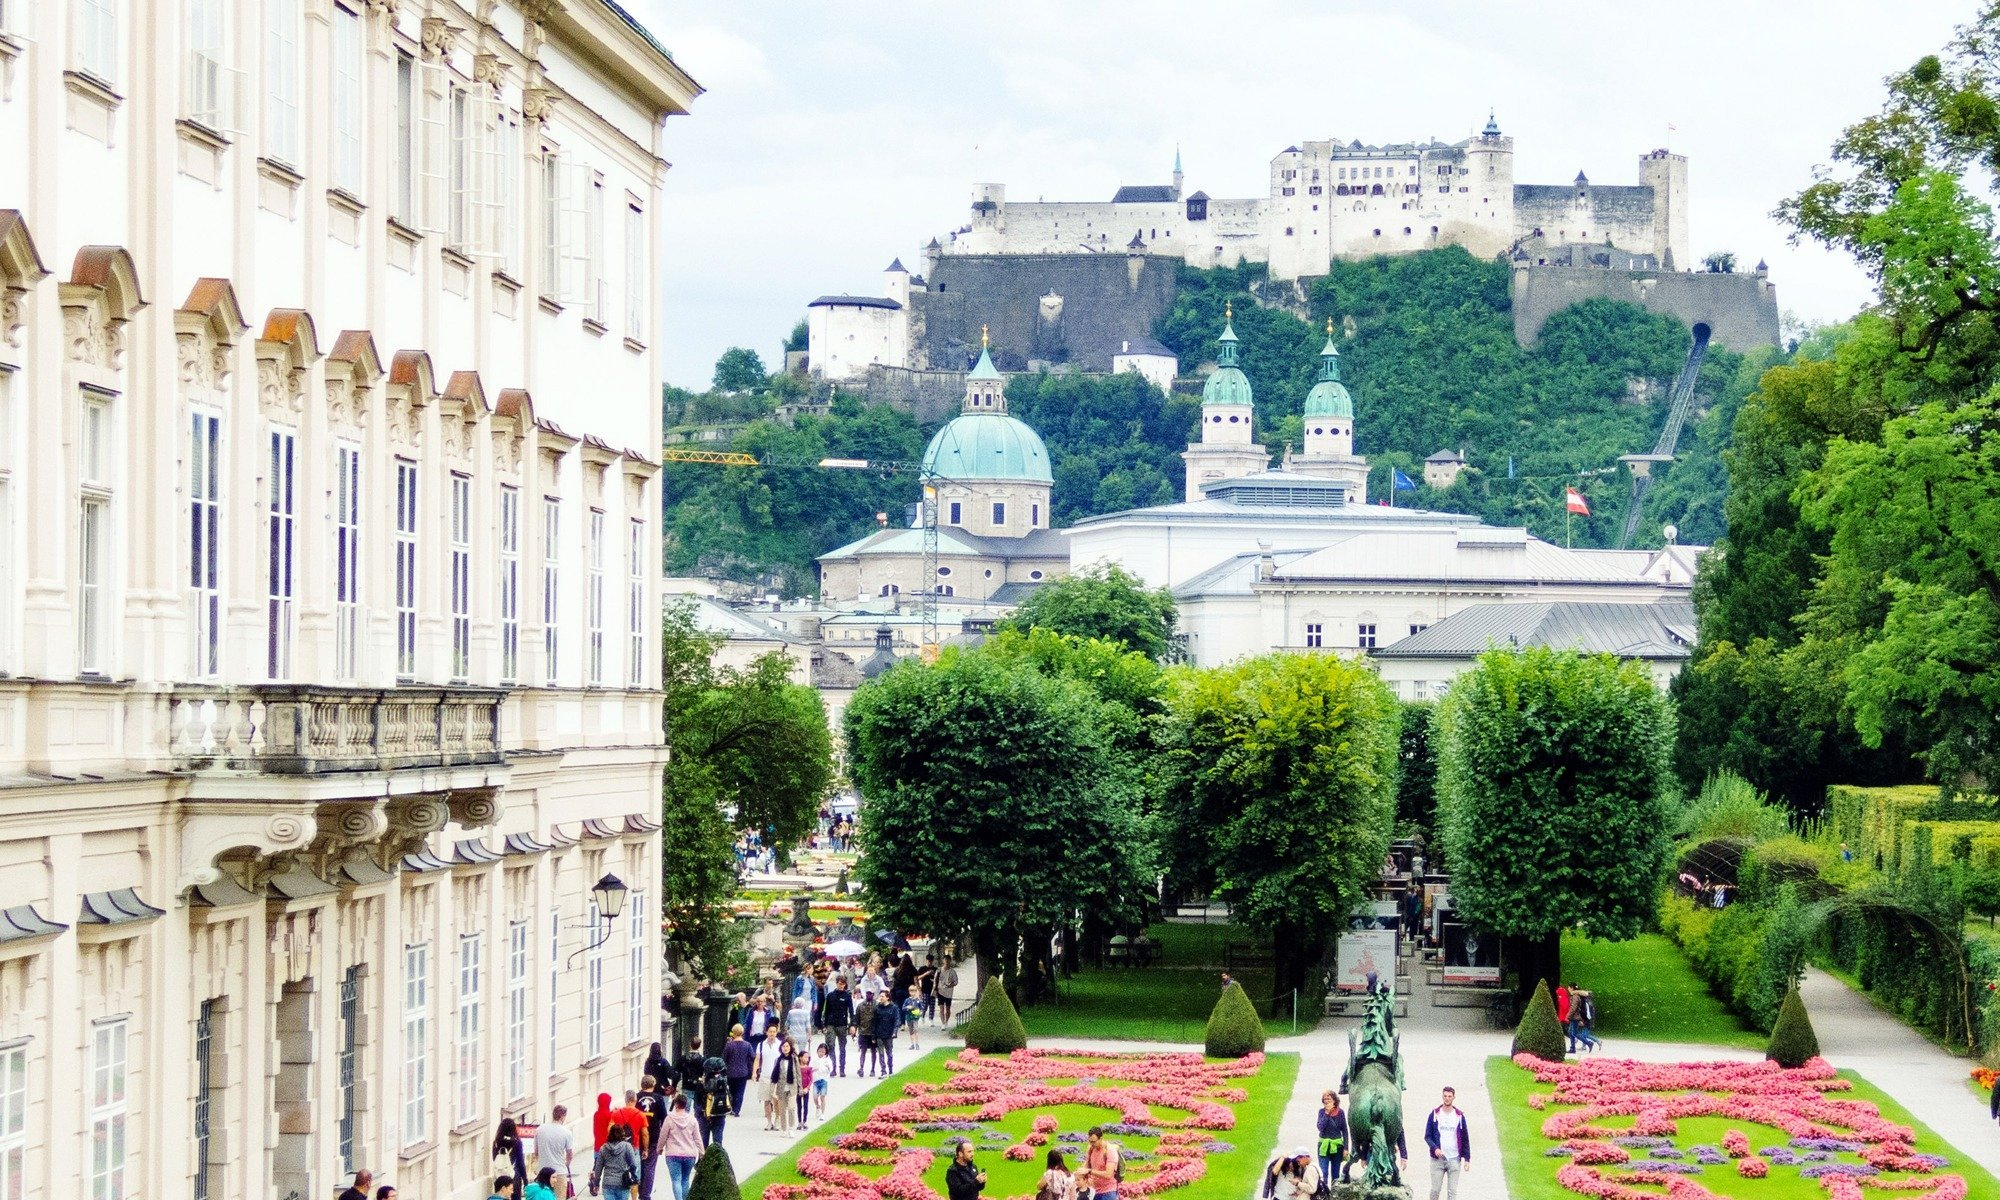 Salzburg is a magical city that's not to be missed when visiting Austria. From majestic Baroque palaces to towering medieval fortresses and a long love affair with music and the arts, there's much to see, hear, and enjoy in this charming city. Here's how to spend 3 days in Salzburg.